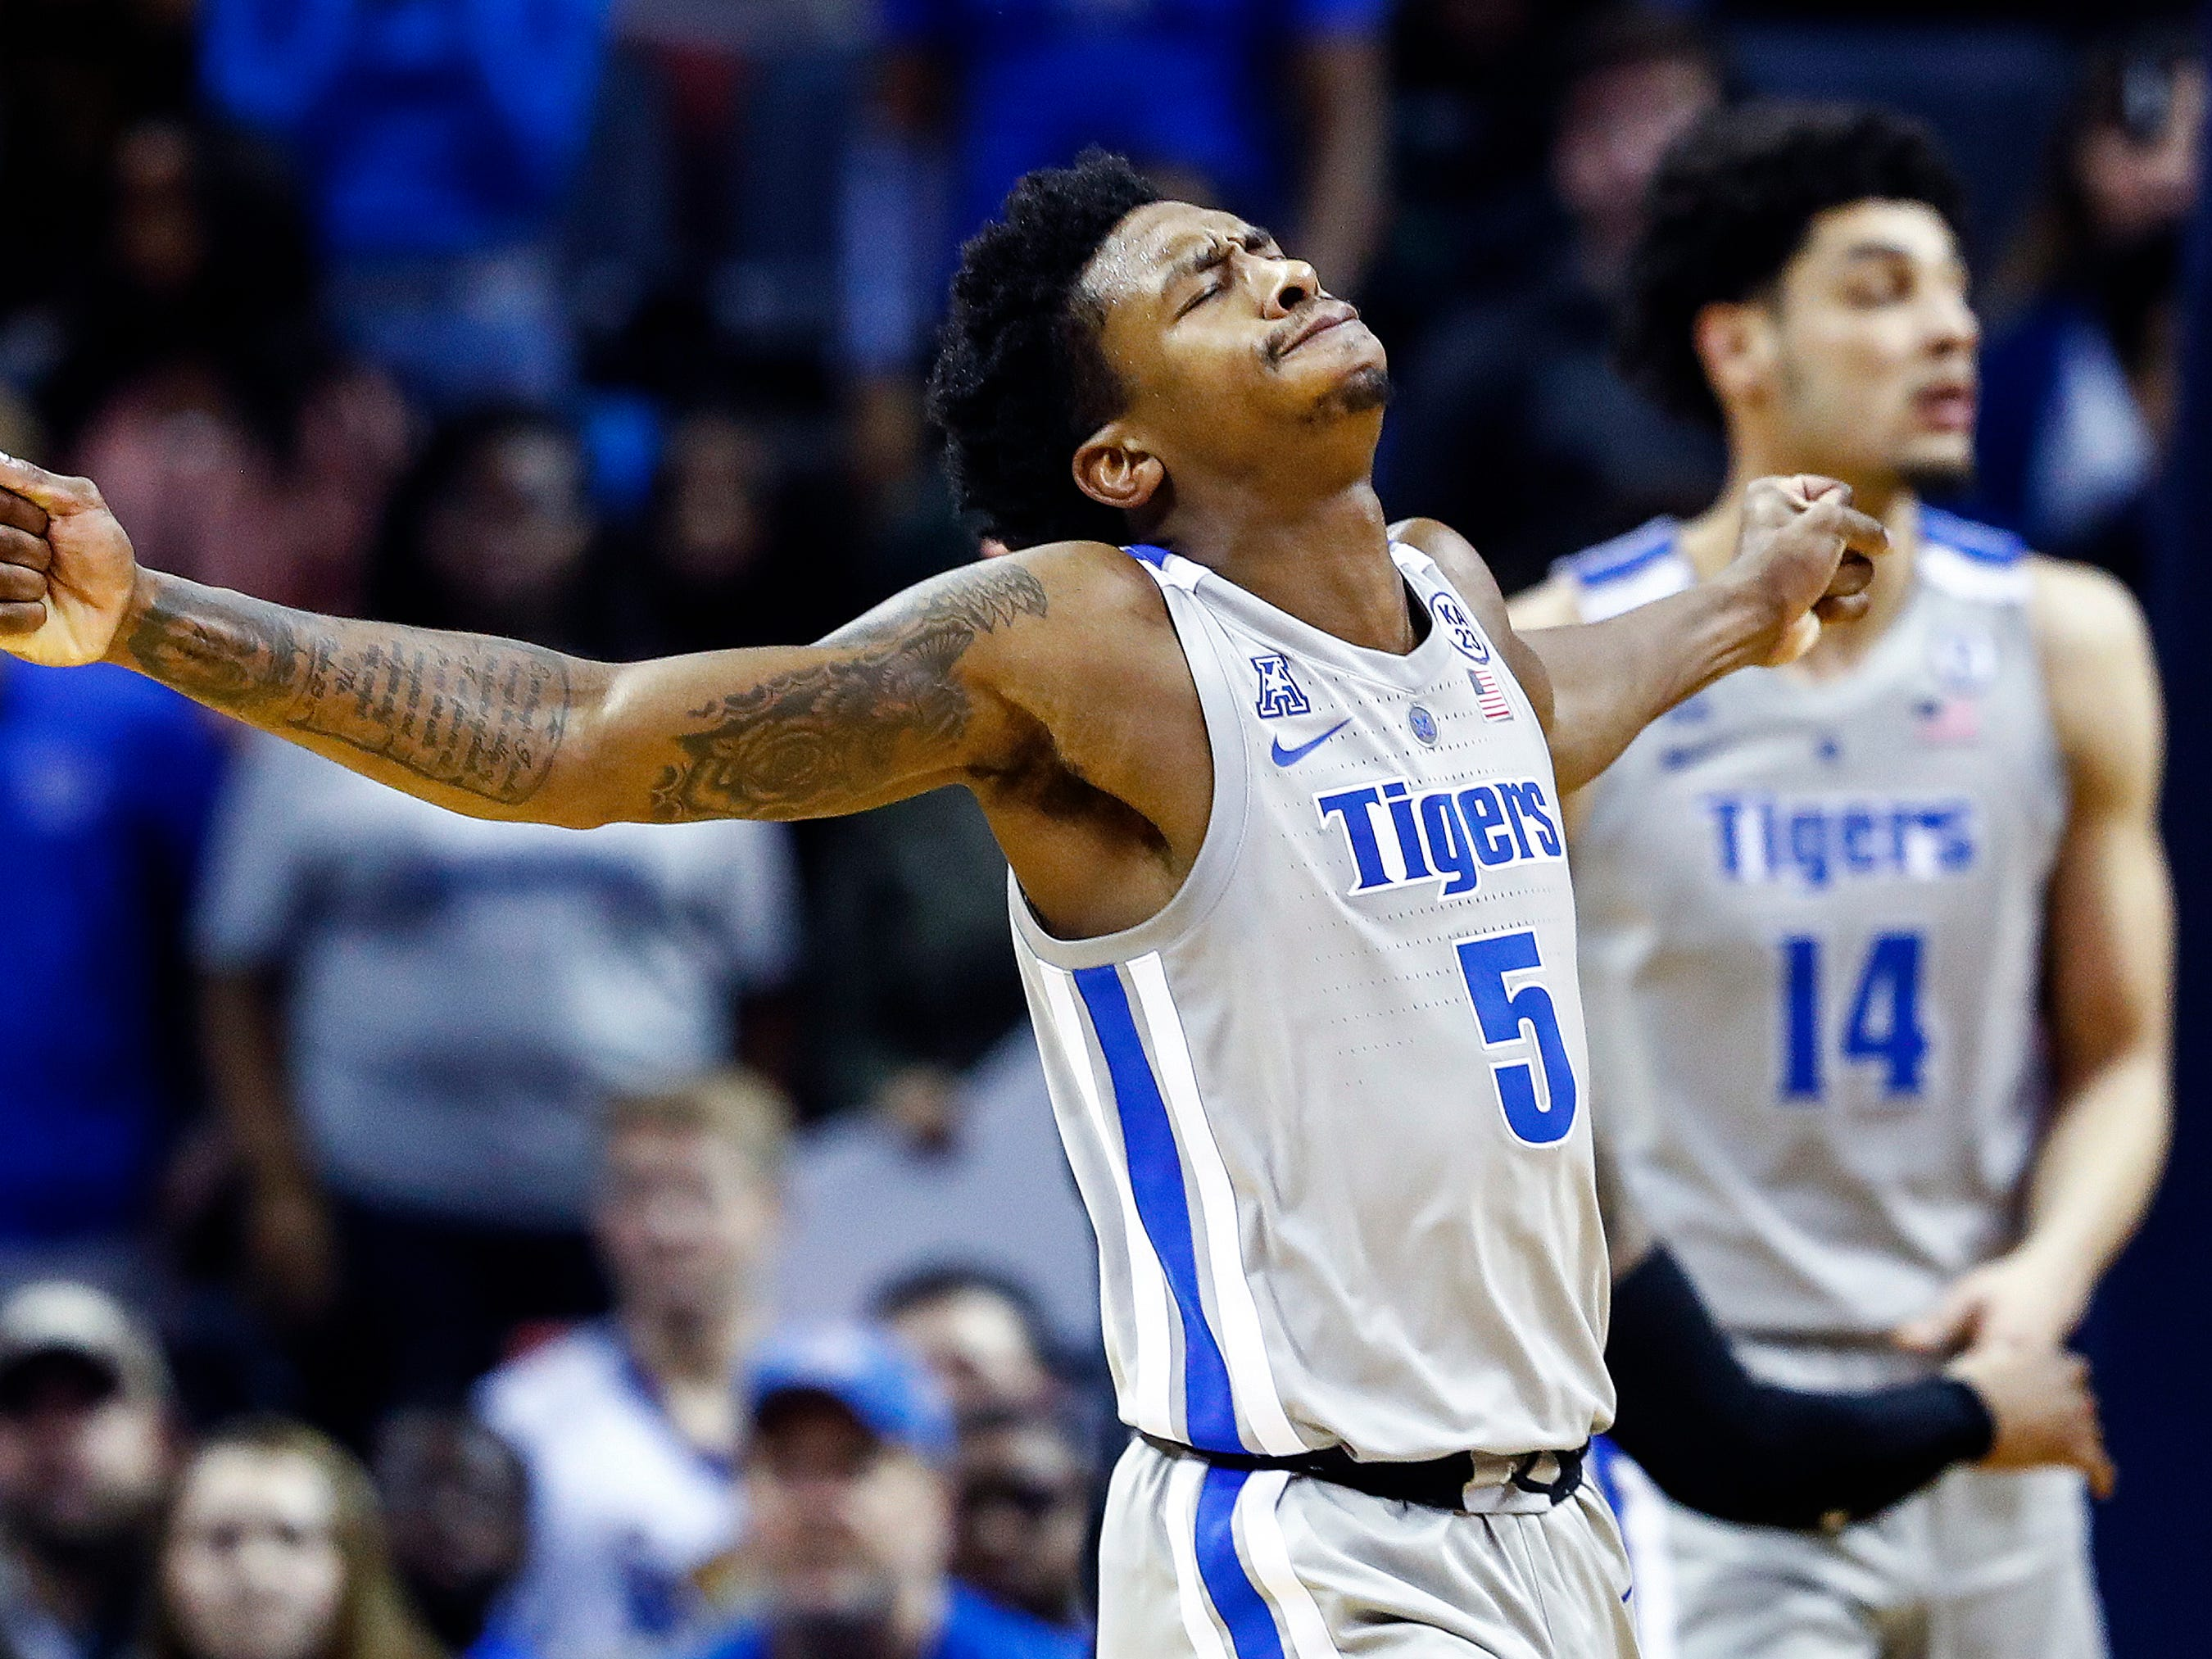 Memphis defender Kareem Brewton Jr.  reacts after being called for a foul against Cincinnati during action at the FedExForum, Thursday, February 7, 2019.